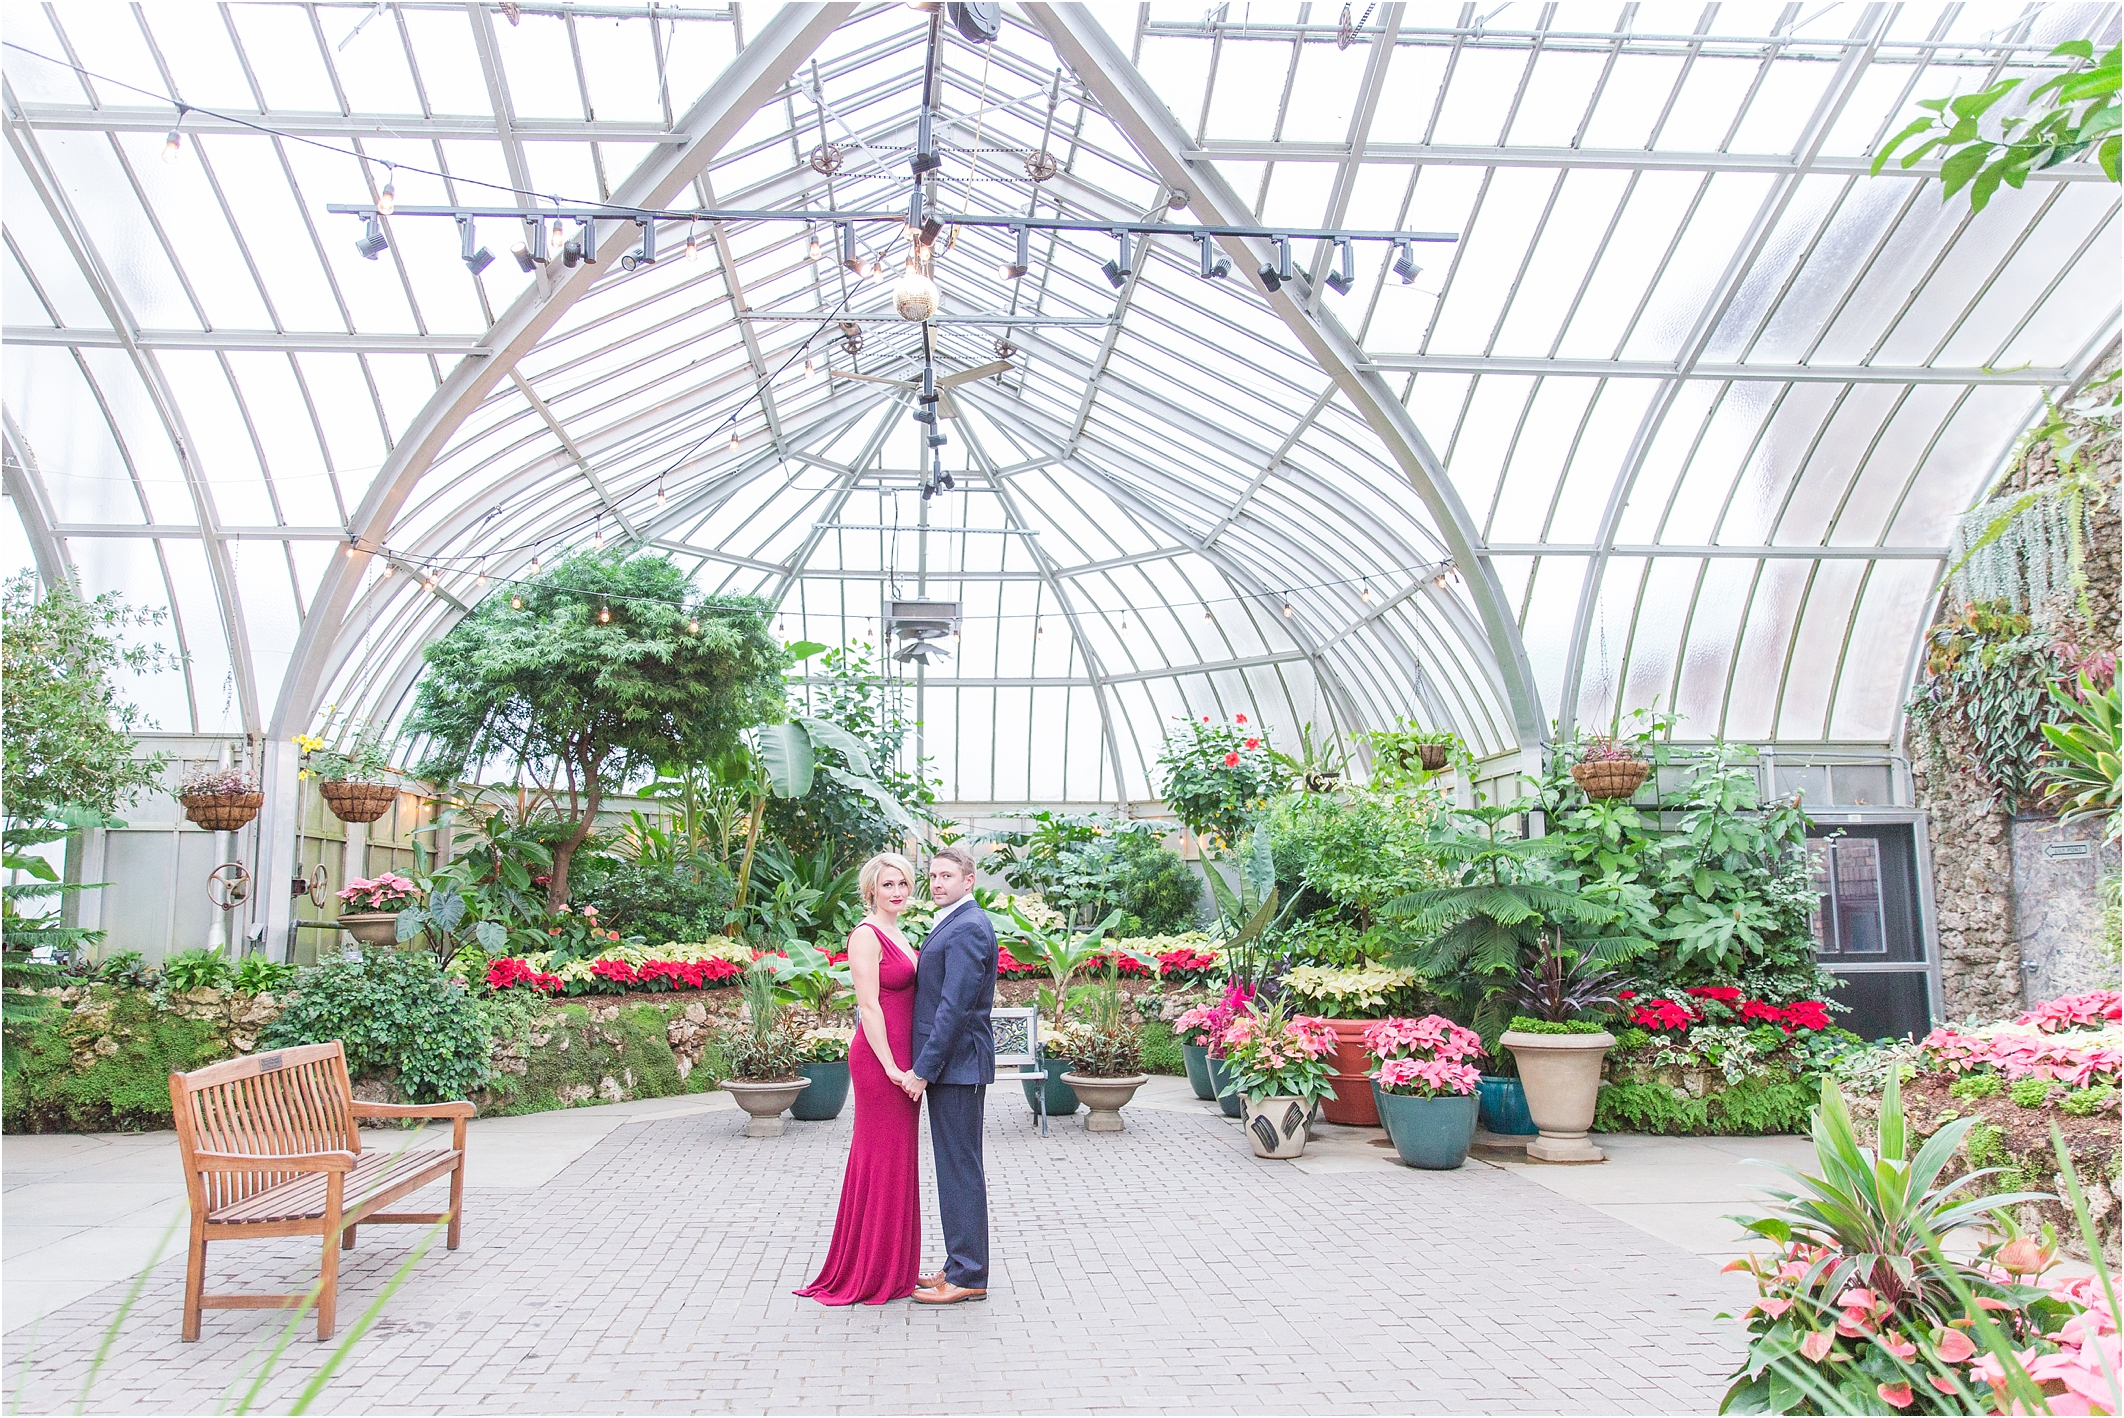 elegant-classic-belle-isle-conservatory-engagement-photos-in-detroit-mi-by-courtney-carolyn-photography_0005-1.jpg